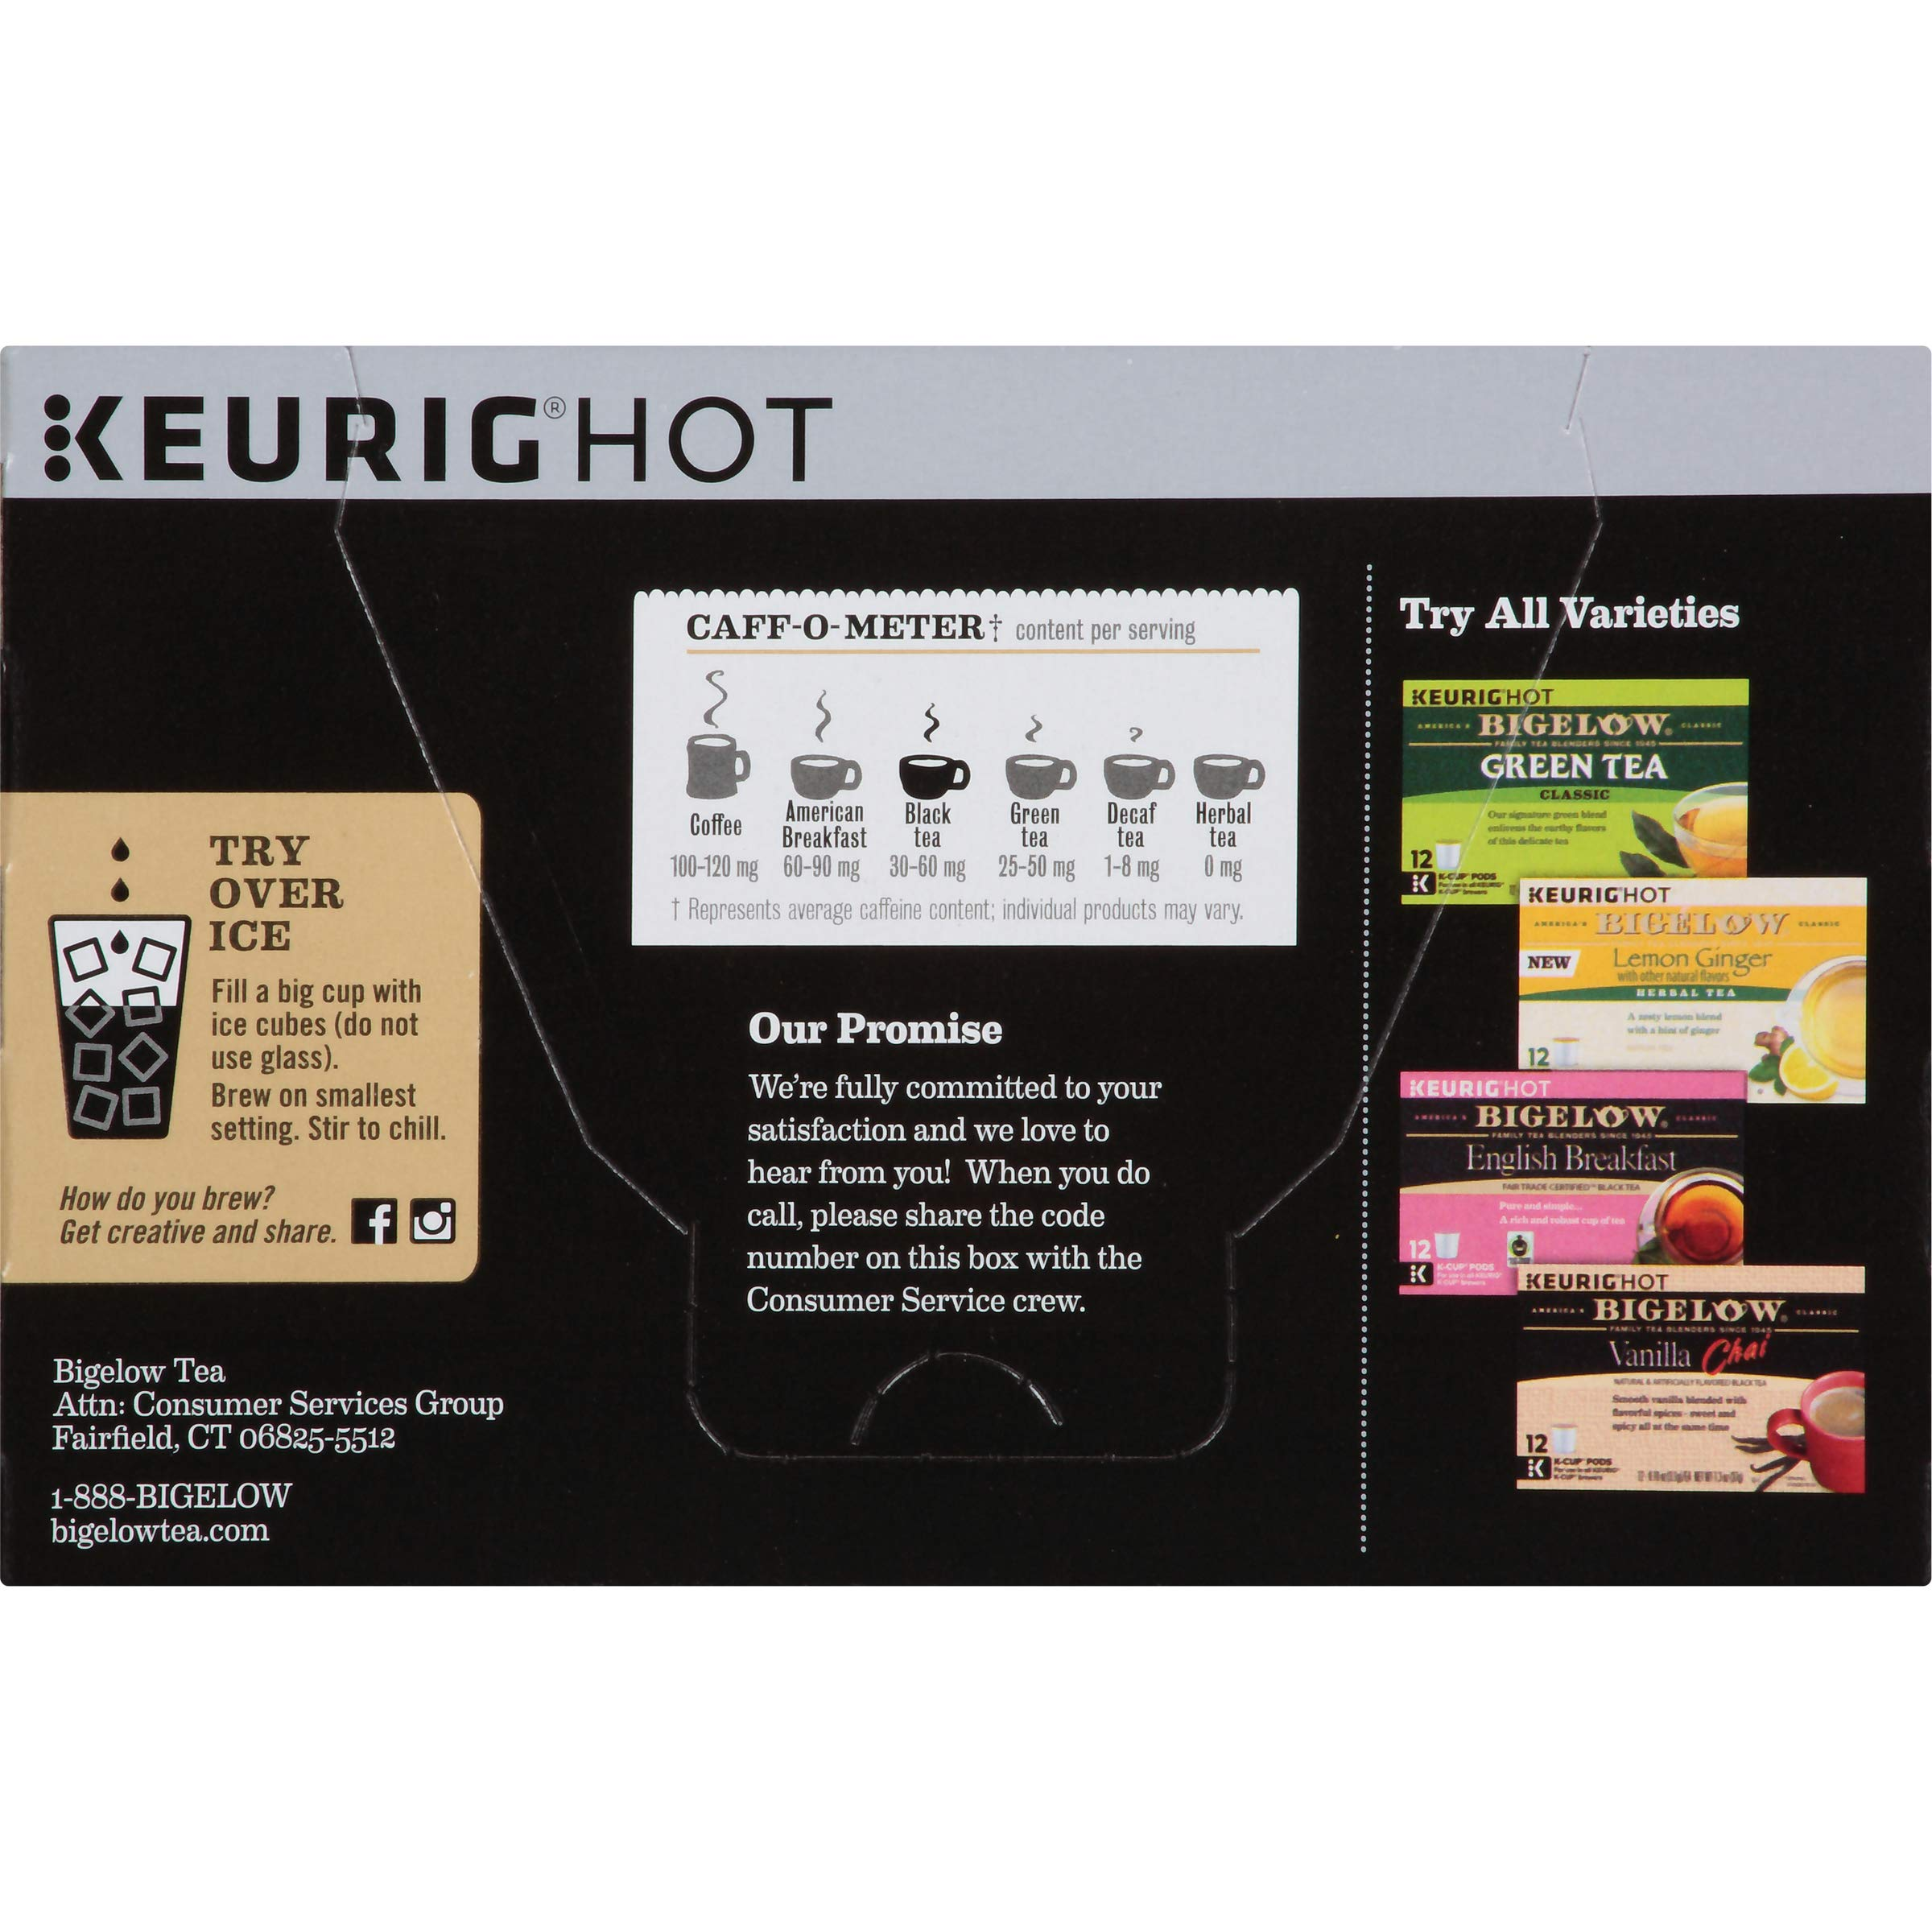 Bigelow Earl Grey Black Tea Keurig K-Cups, Box of 12 Cups (Pack of 6), 72 Tea Bags Total , Single Serve Portion Premium Tea in Pods, Compatible with Keurig and other K Cup Coffee and Tea Brewers by Bigelow Tea (Image #2)